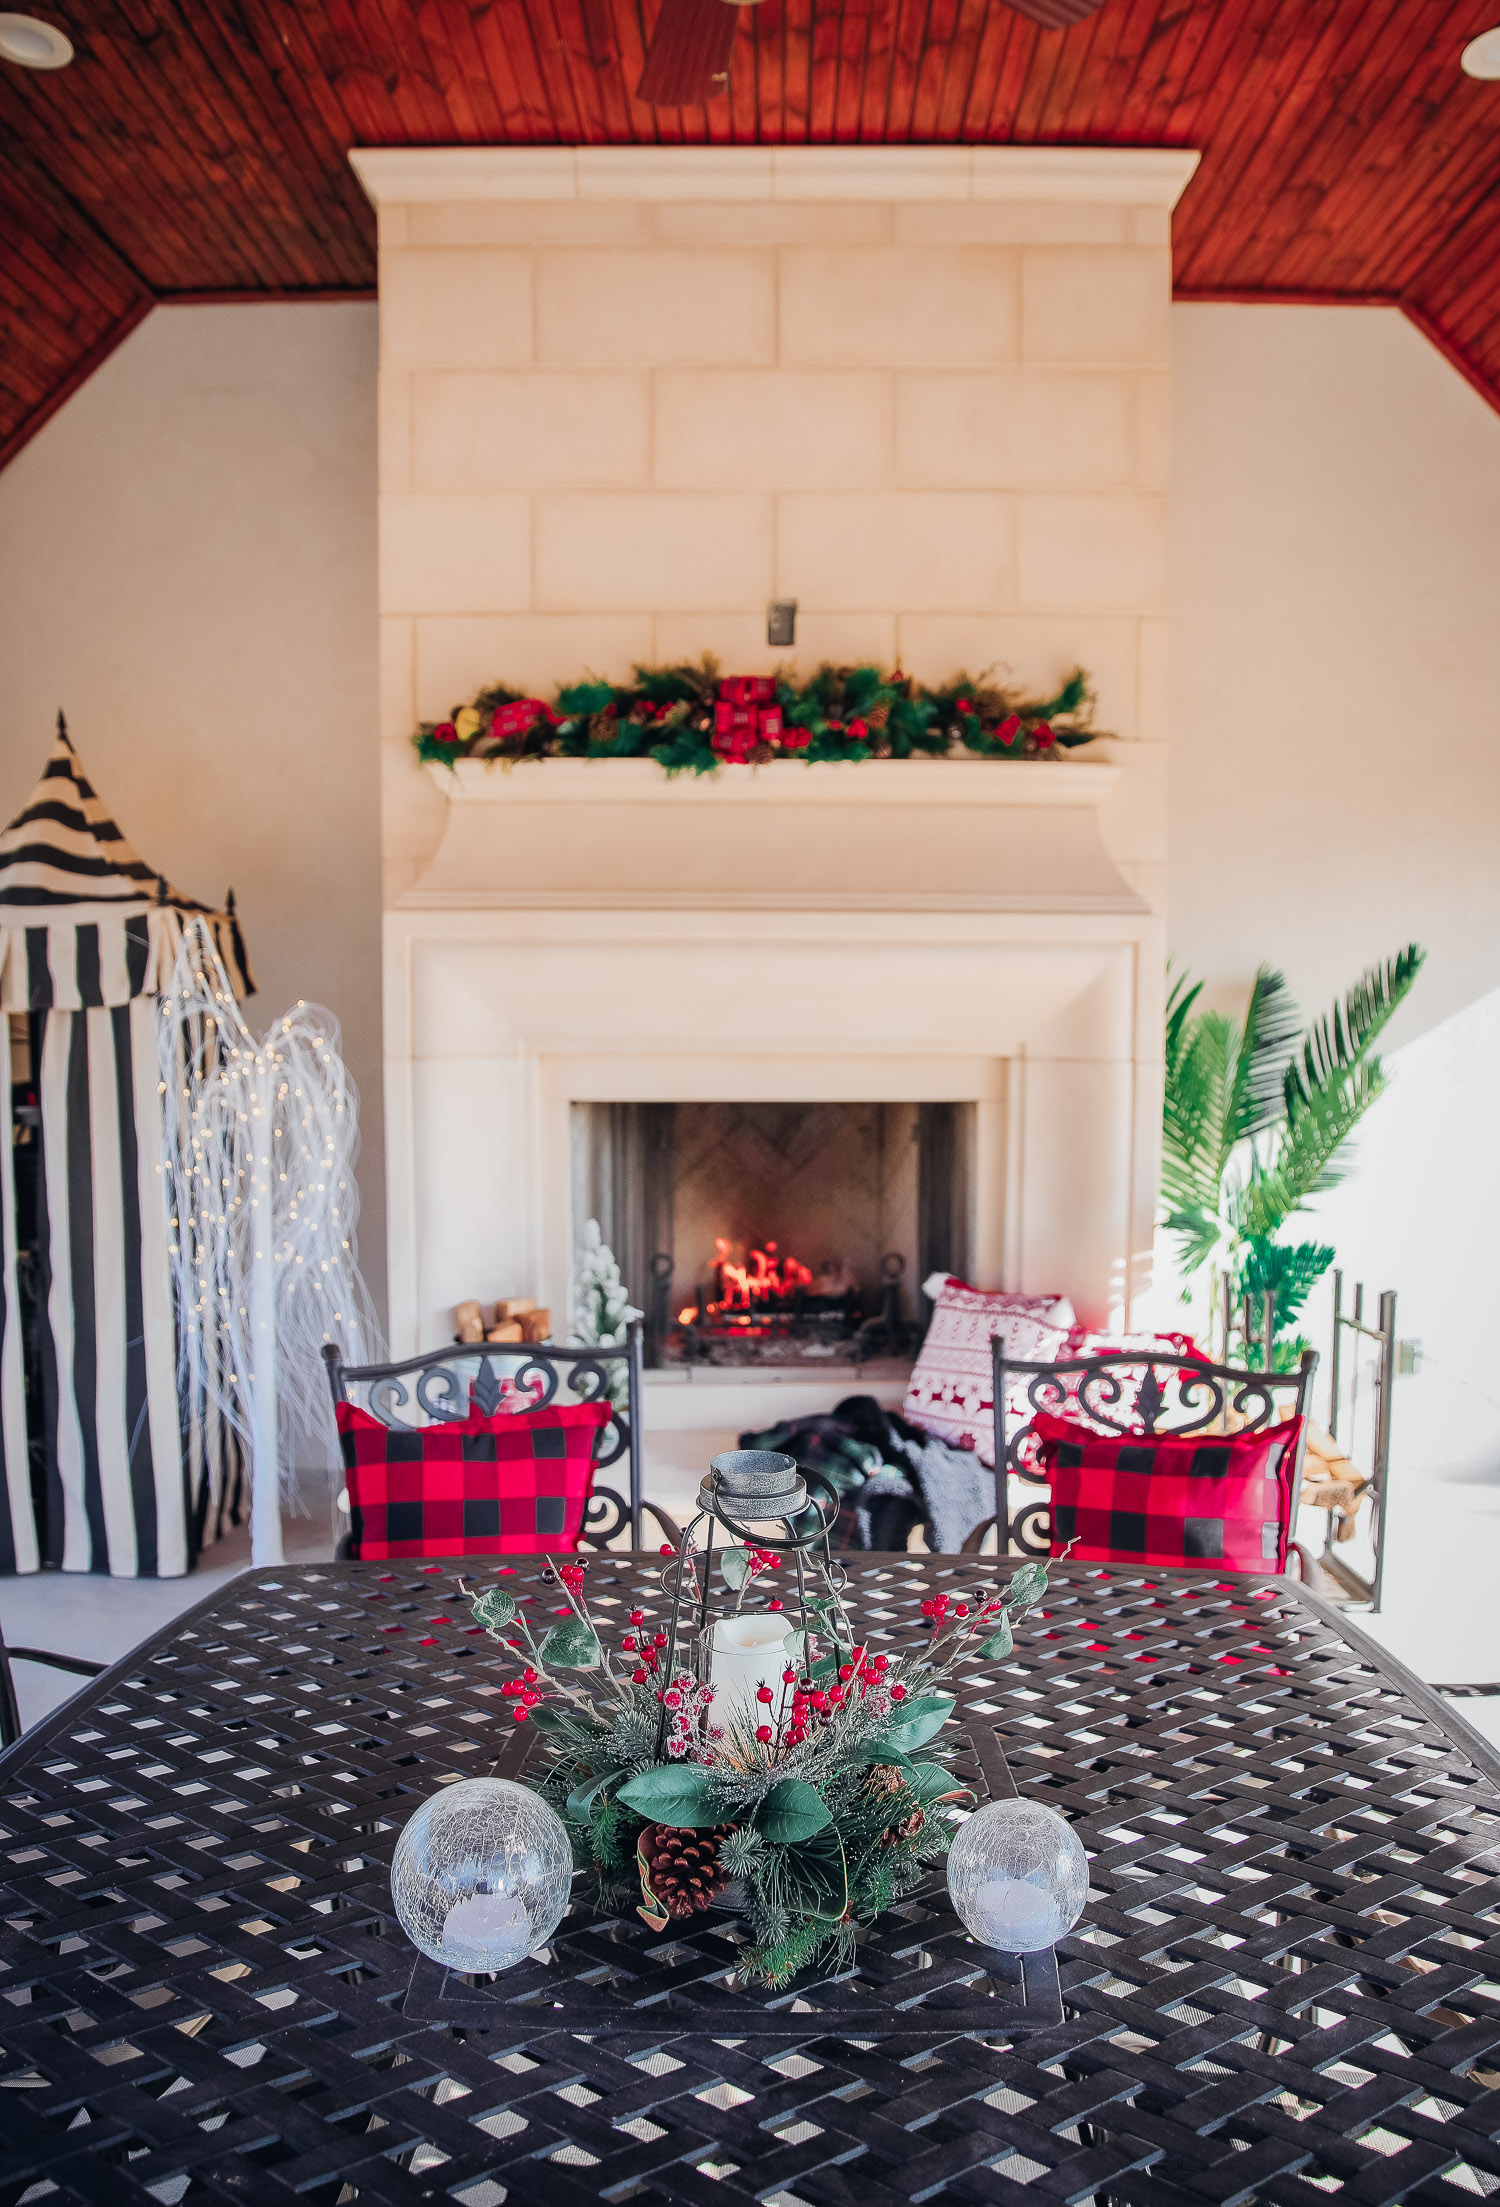 backyard decor christmas, outdoor pool christmas decor, walmart pool ornament, emily gemma backyard | Christmas Pool Decorations by popular US life and style blog, The Sweetest Thing: image of a pool house decorated with Christmas garland, black and red buffalo check throw pillows, Christmas tree decor, and candles.